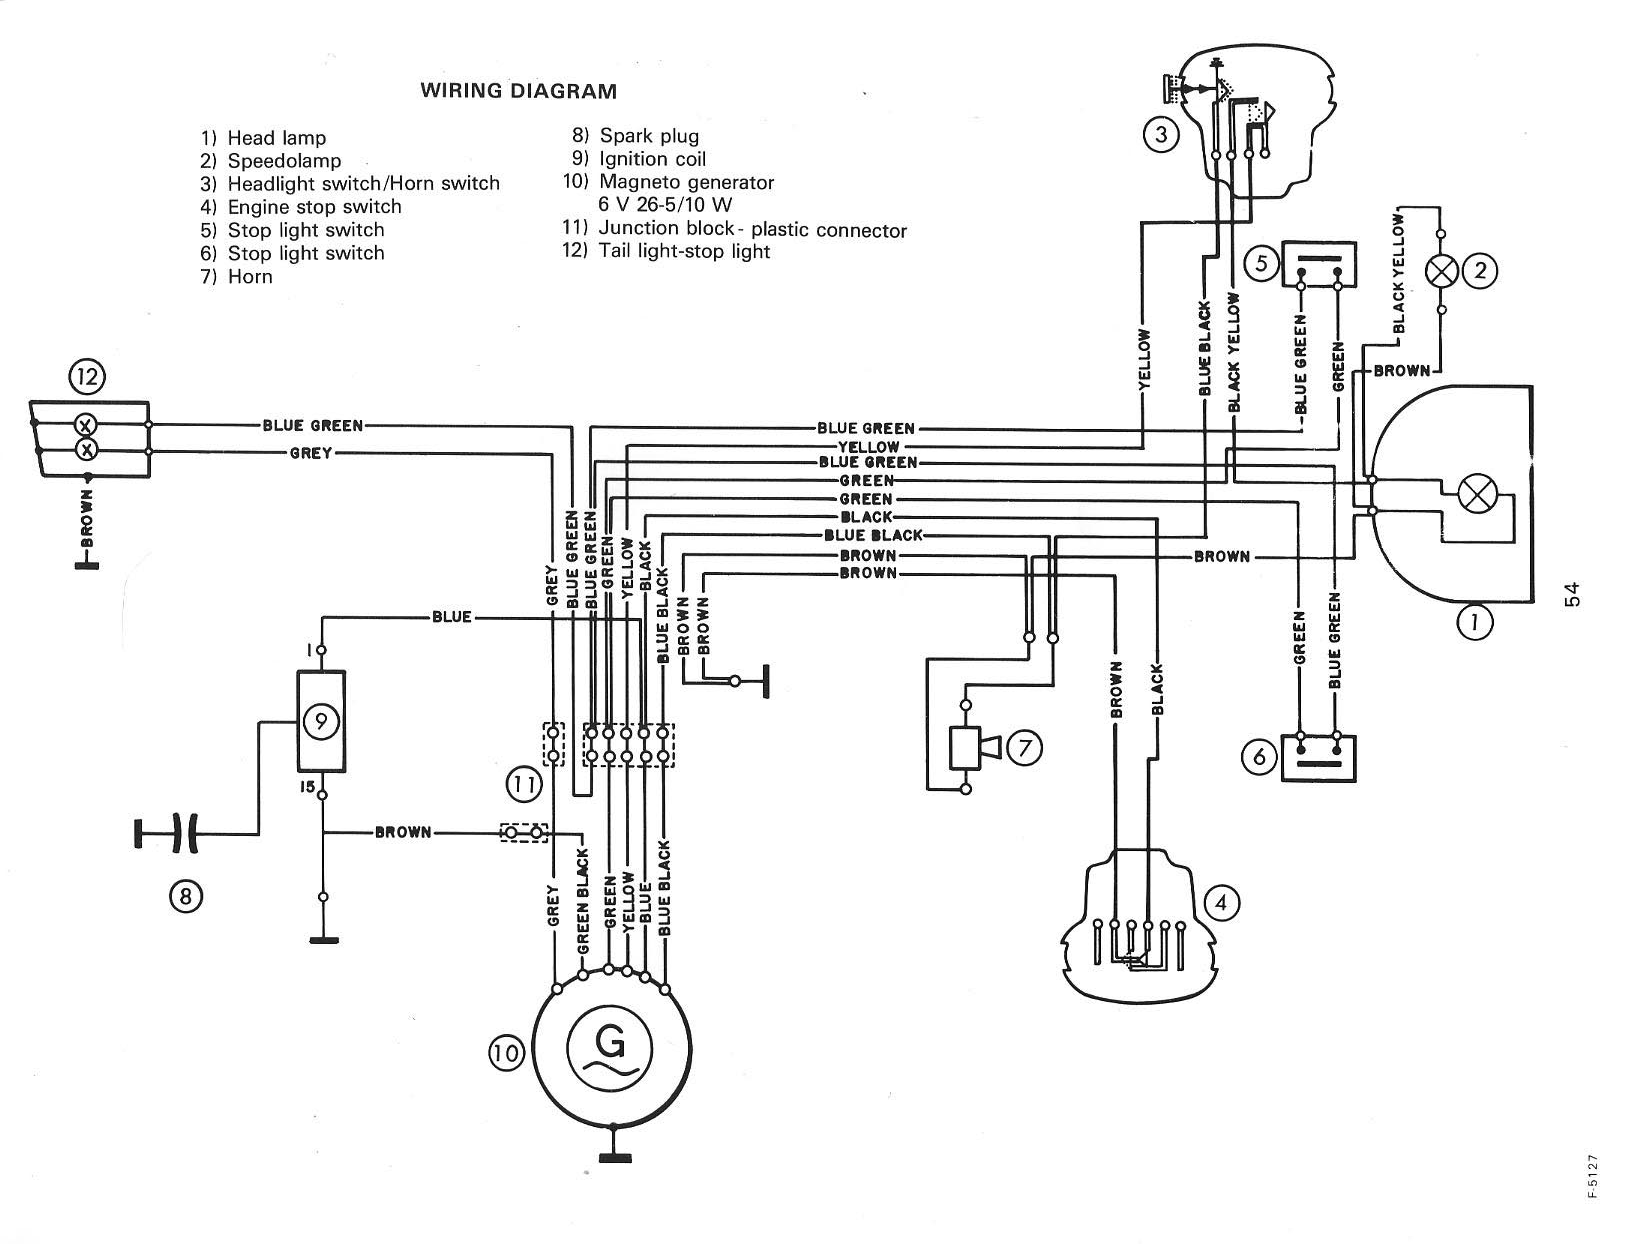 wiring diagram puch newport puch wiring diagrams - moped wiki 1965 chrysler newport wiring diagram